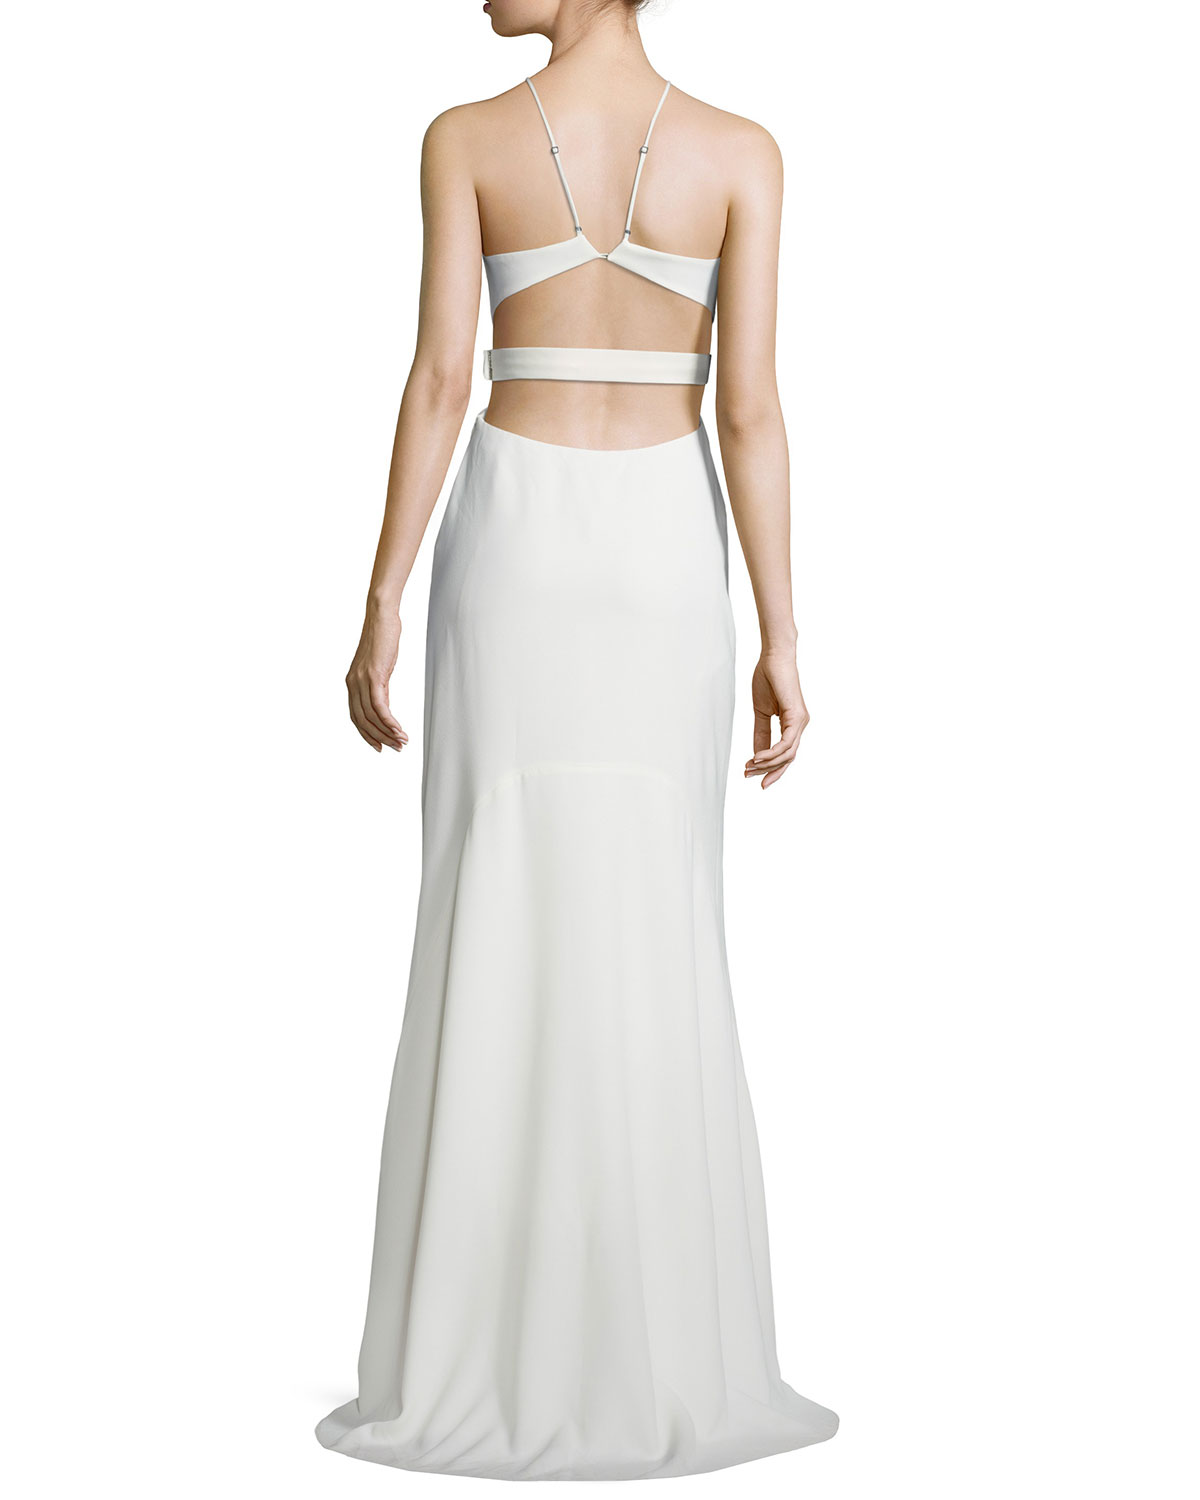 cdf2bb46ccd Halston Heritage Halter Back-Cutout Cocktail Gown